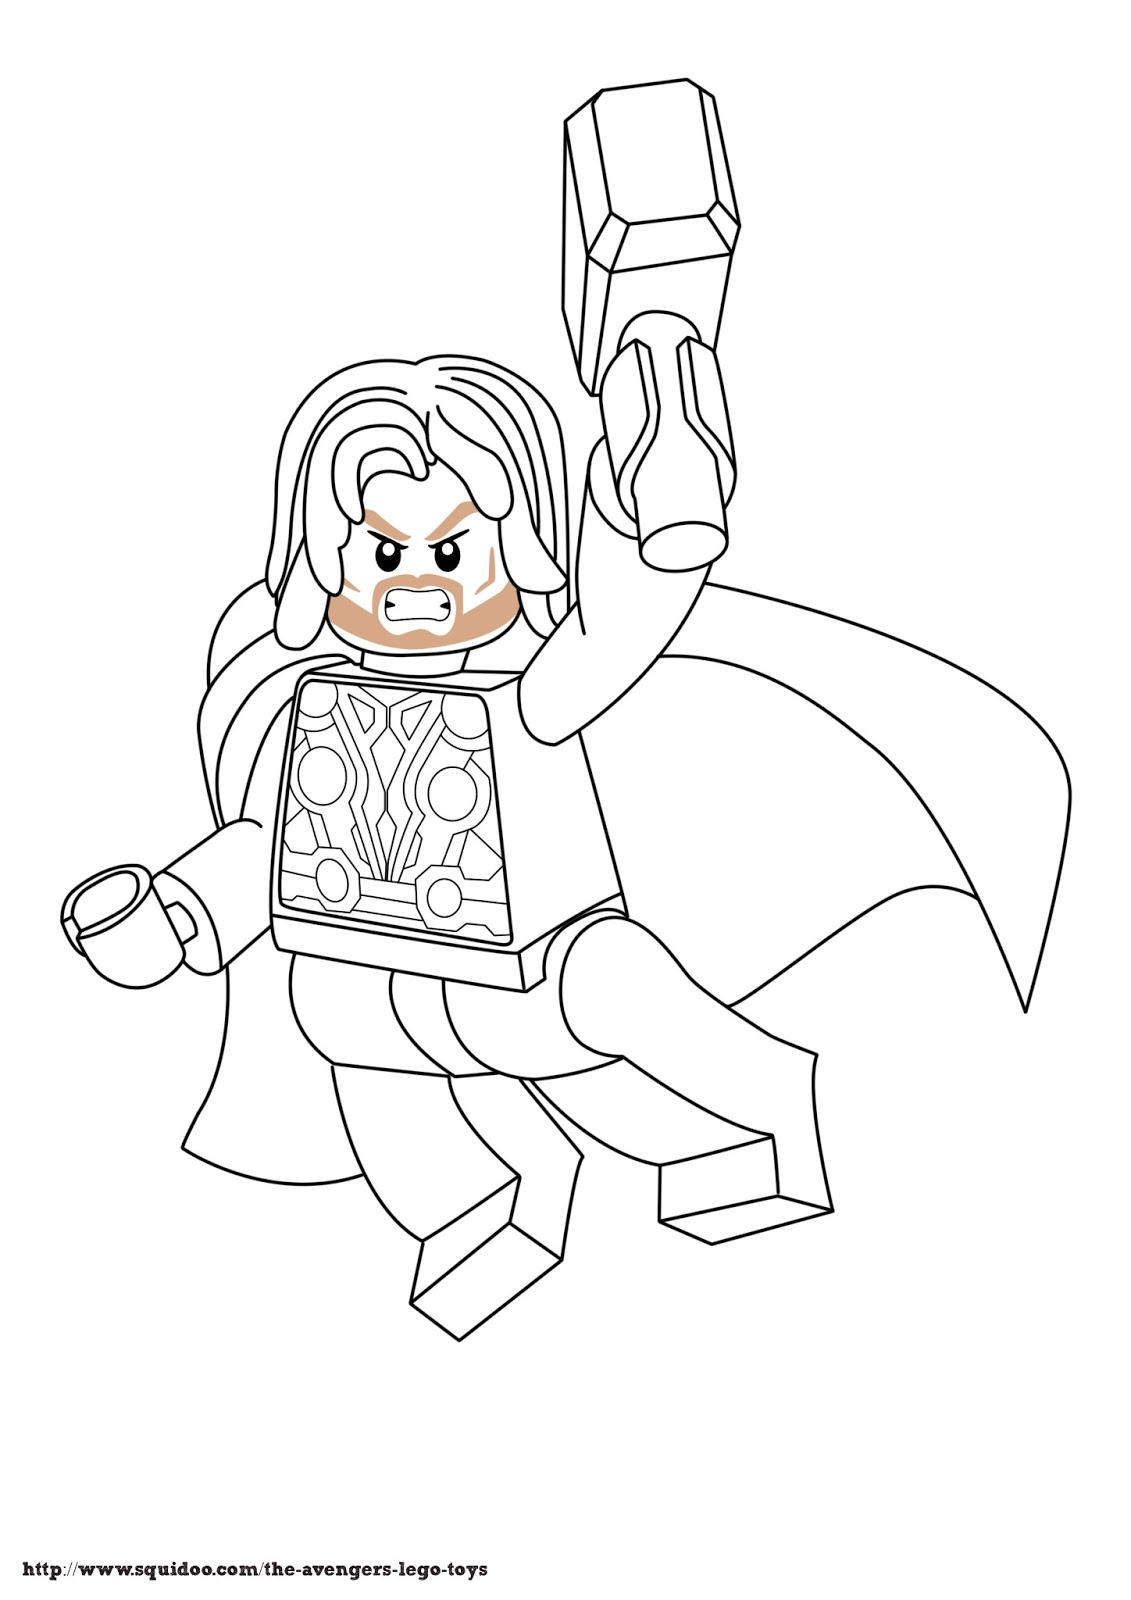 coloring pictures of lego avengers lego avengers coloring pages at getcoloringscom free lego avengers coloring of pictures